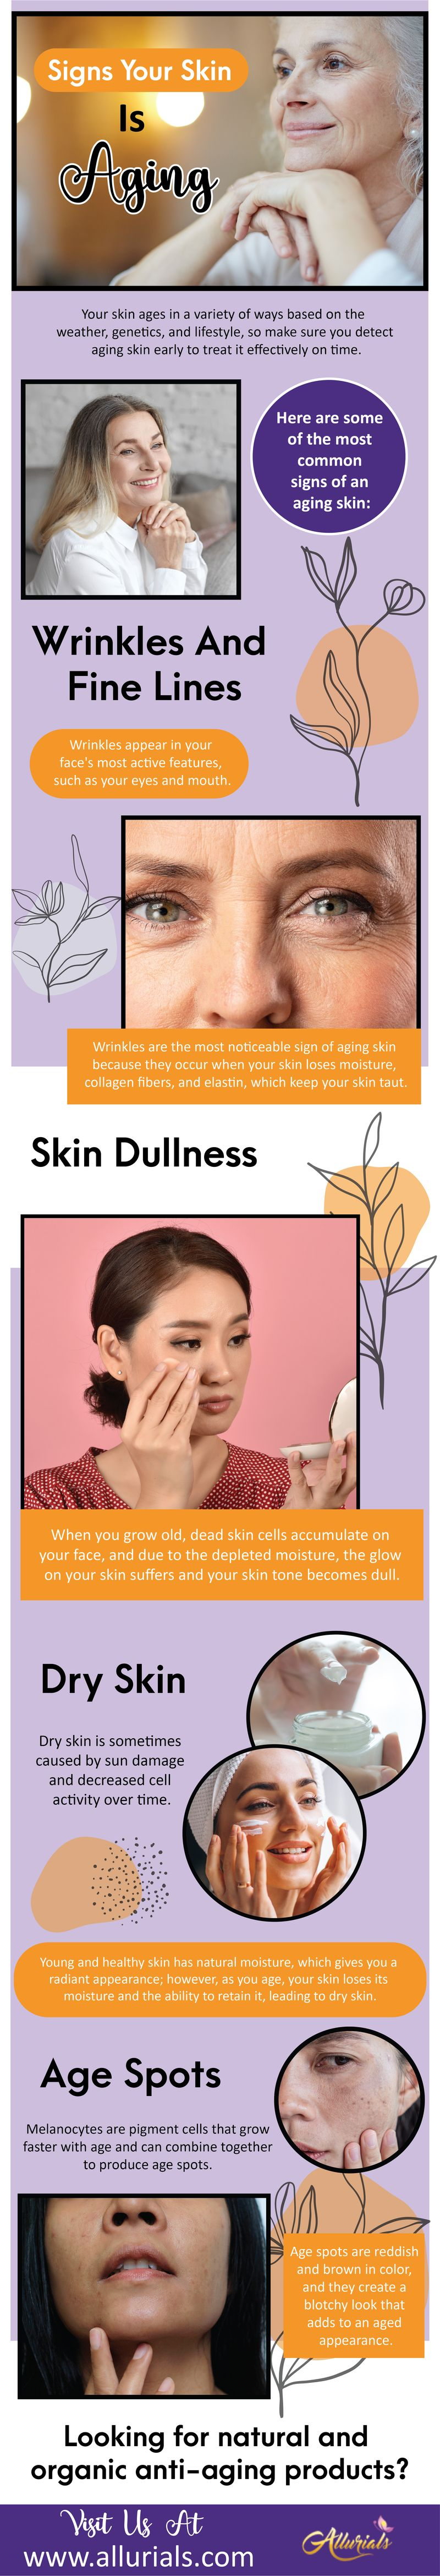 Signs Your Skin Is Aging